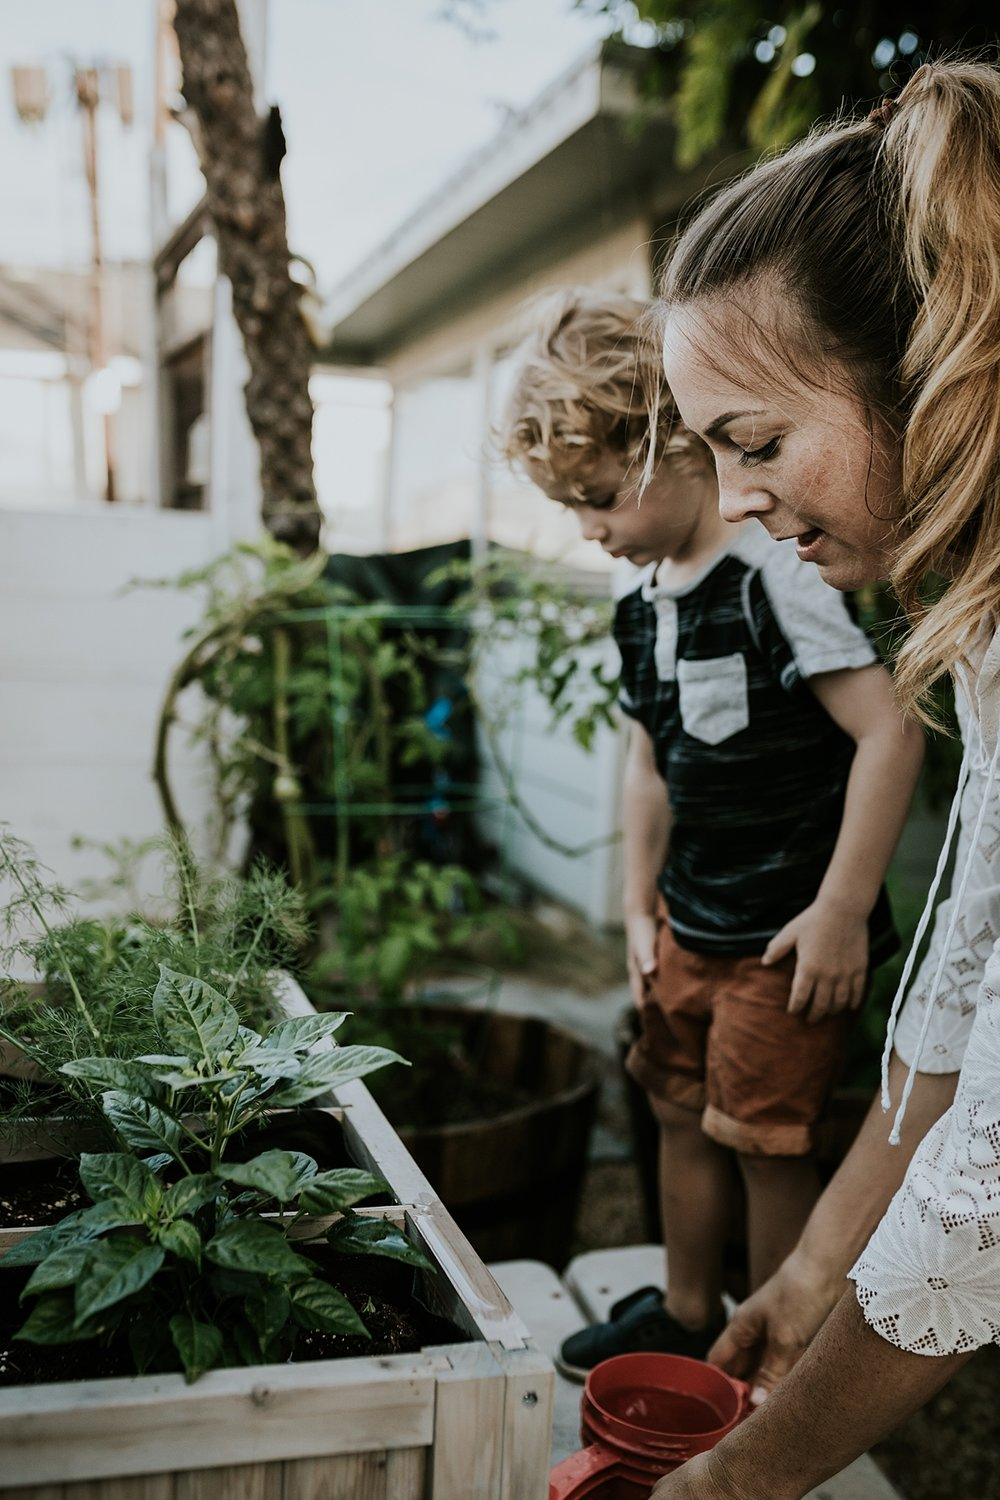 Orange County family photographer. Photo of young curly blonde haired boy and his mama watering plants in their front yard during documentary photo session with Krystil McDowall Photography